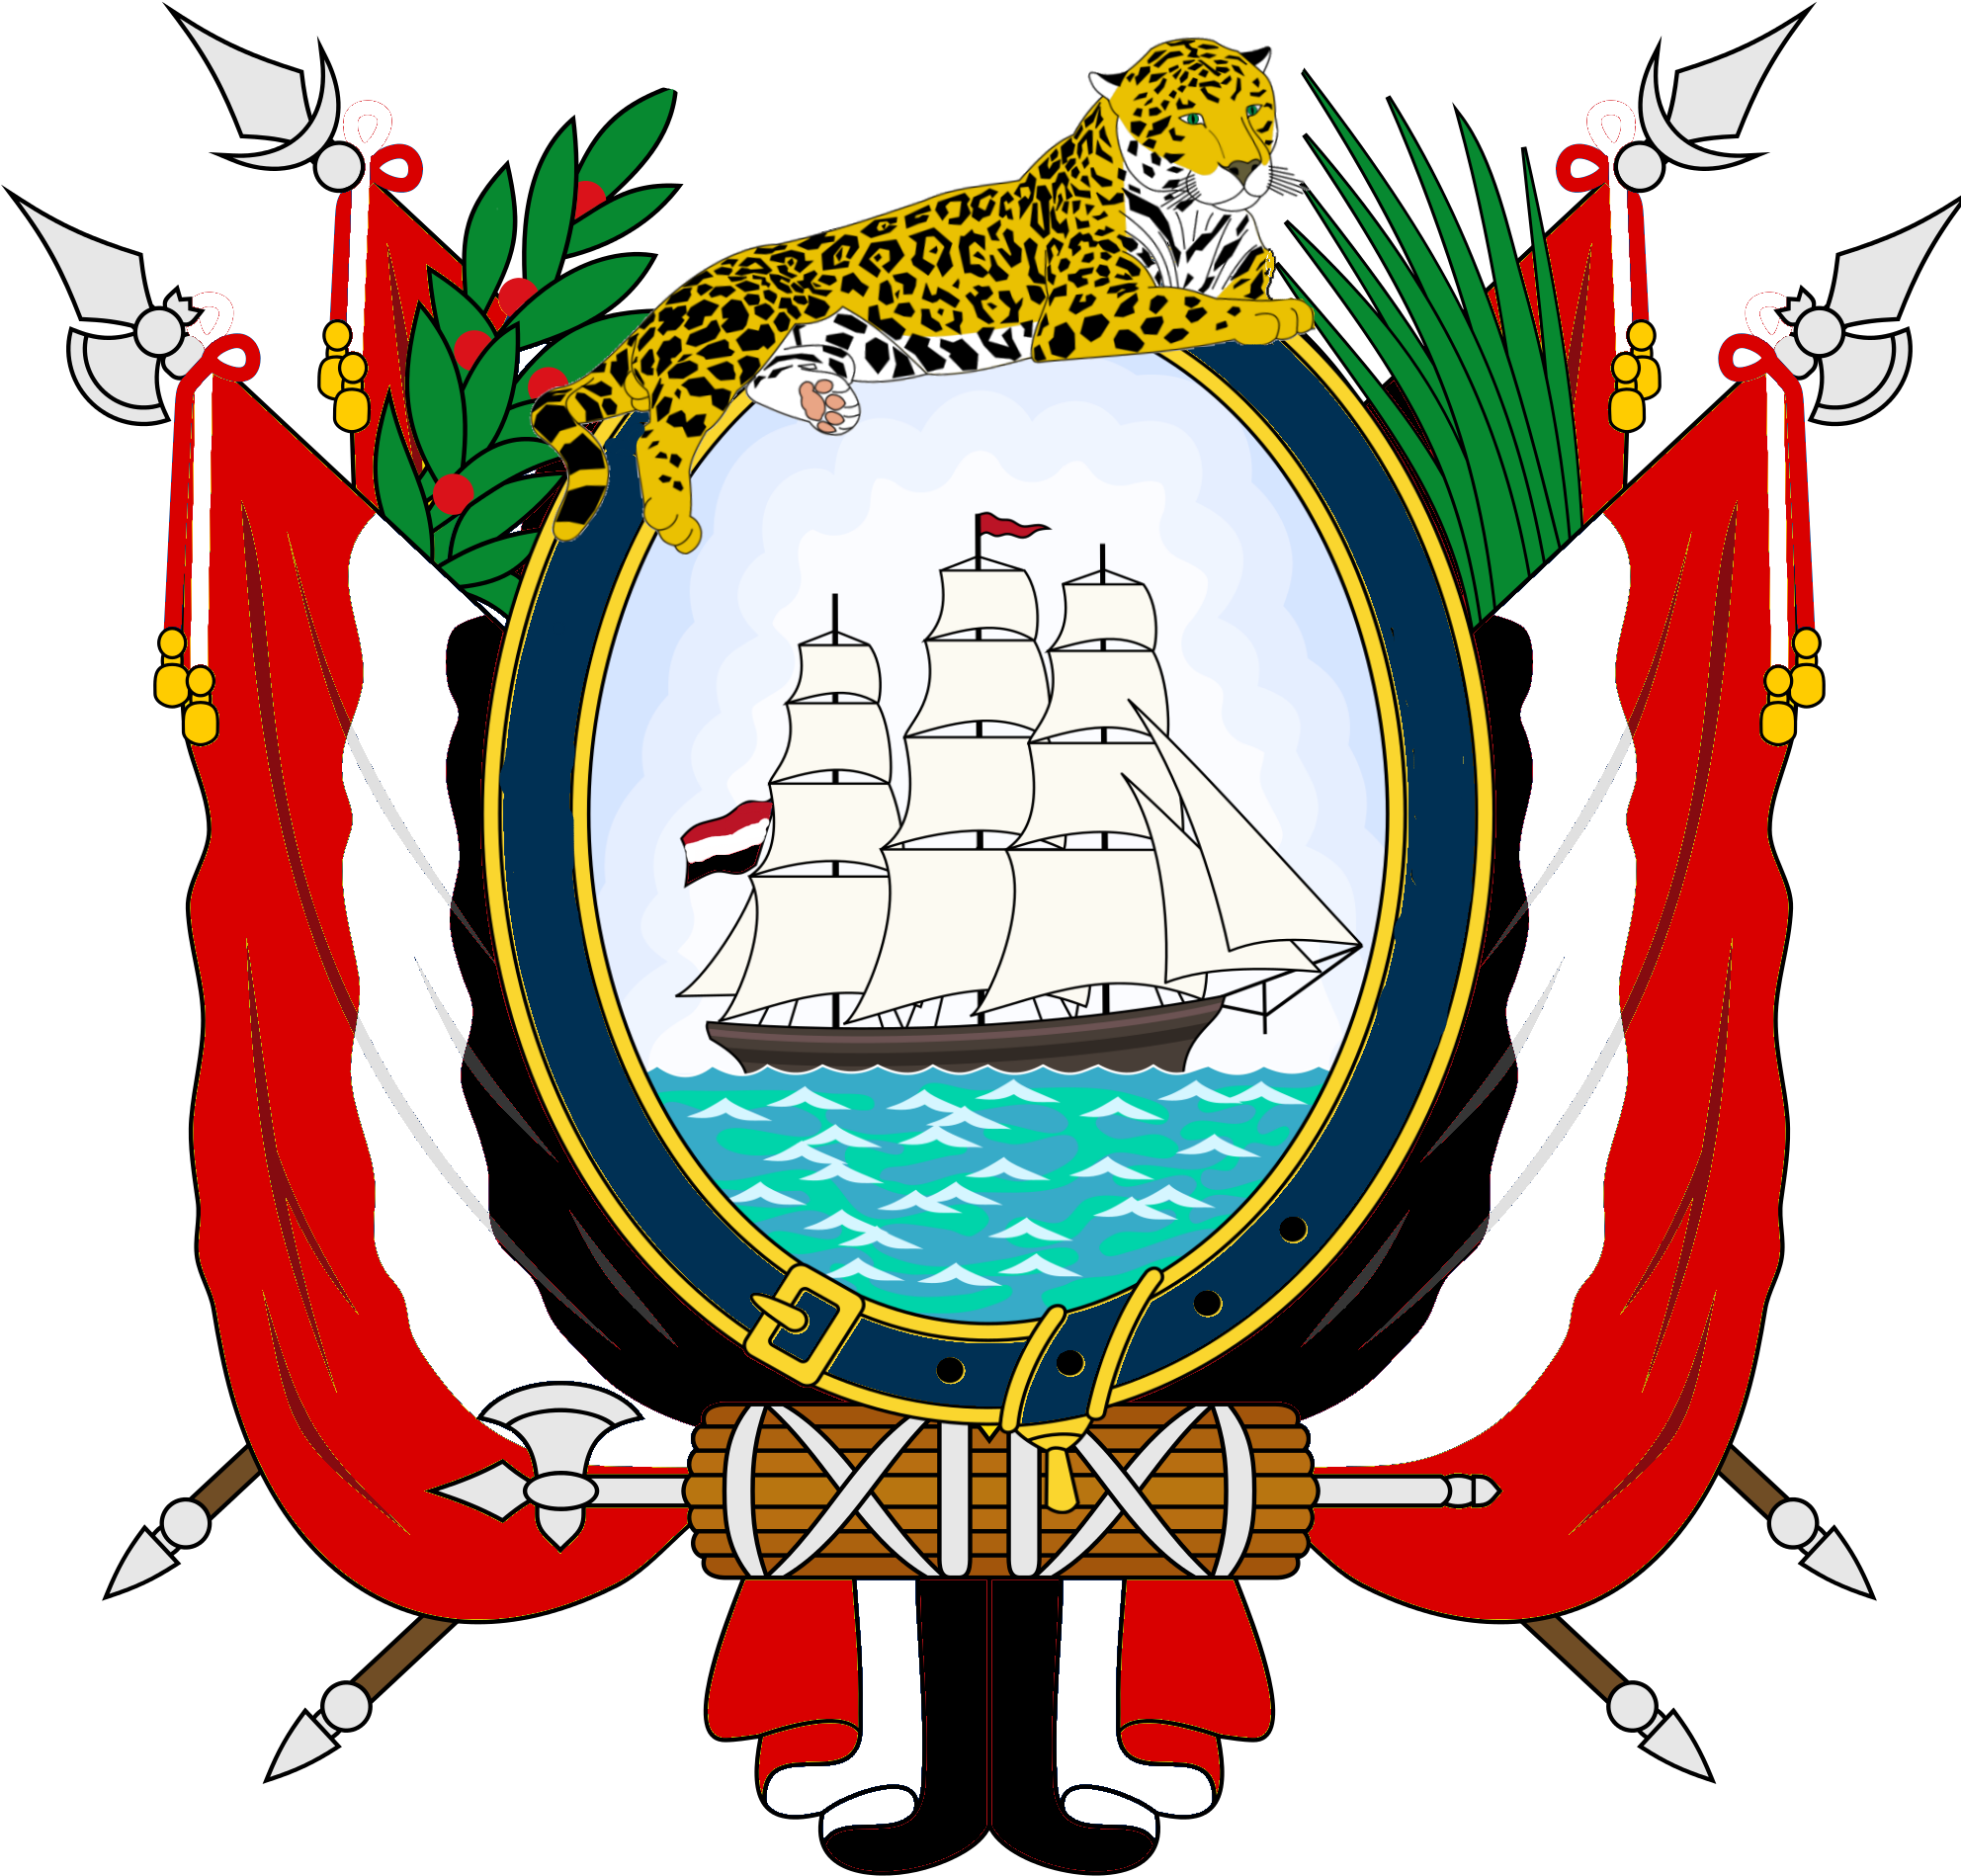 Coat of arms american. Png transparent library guayana